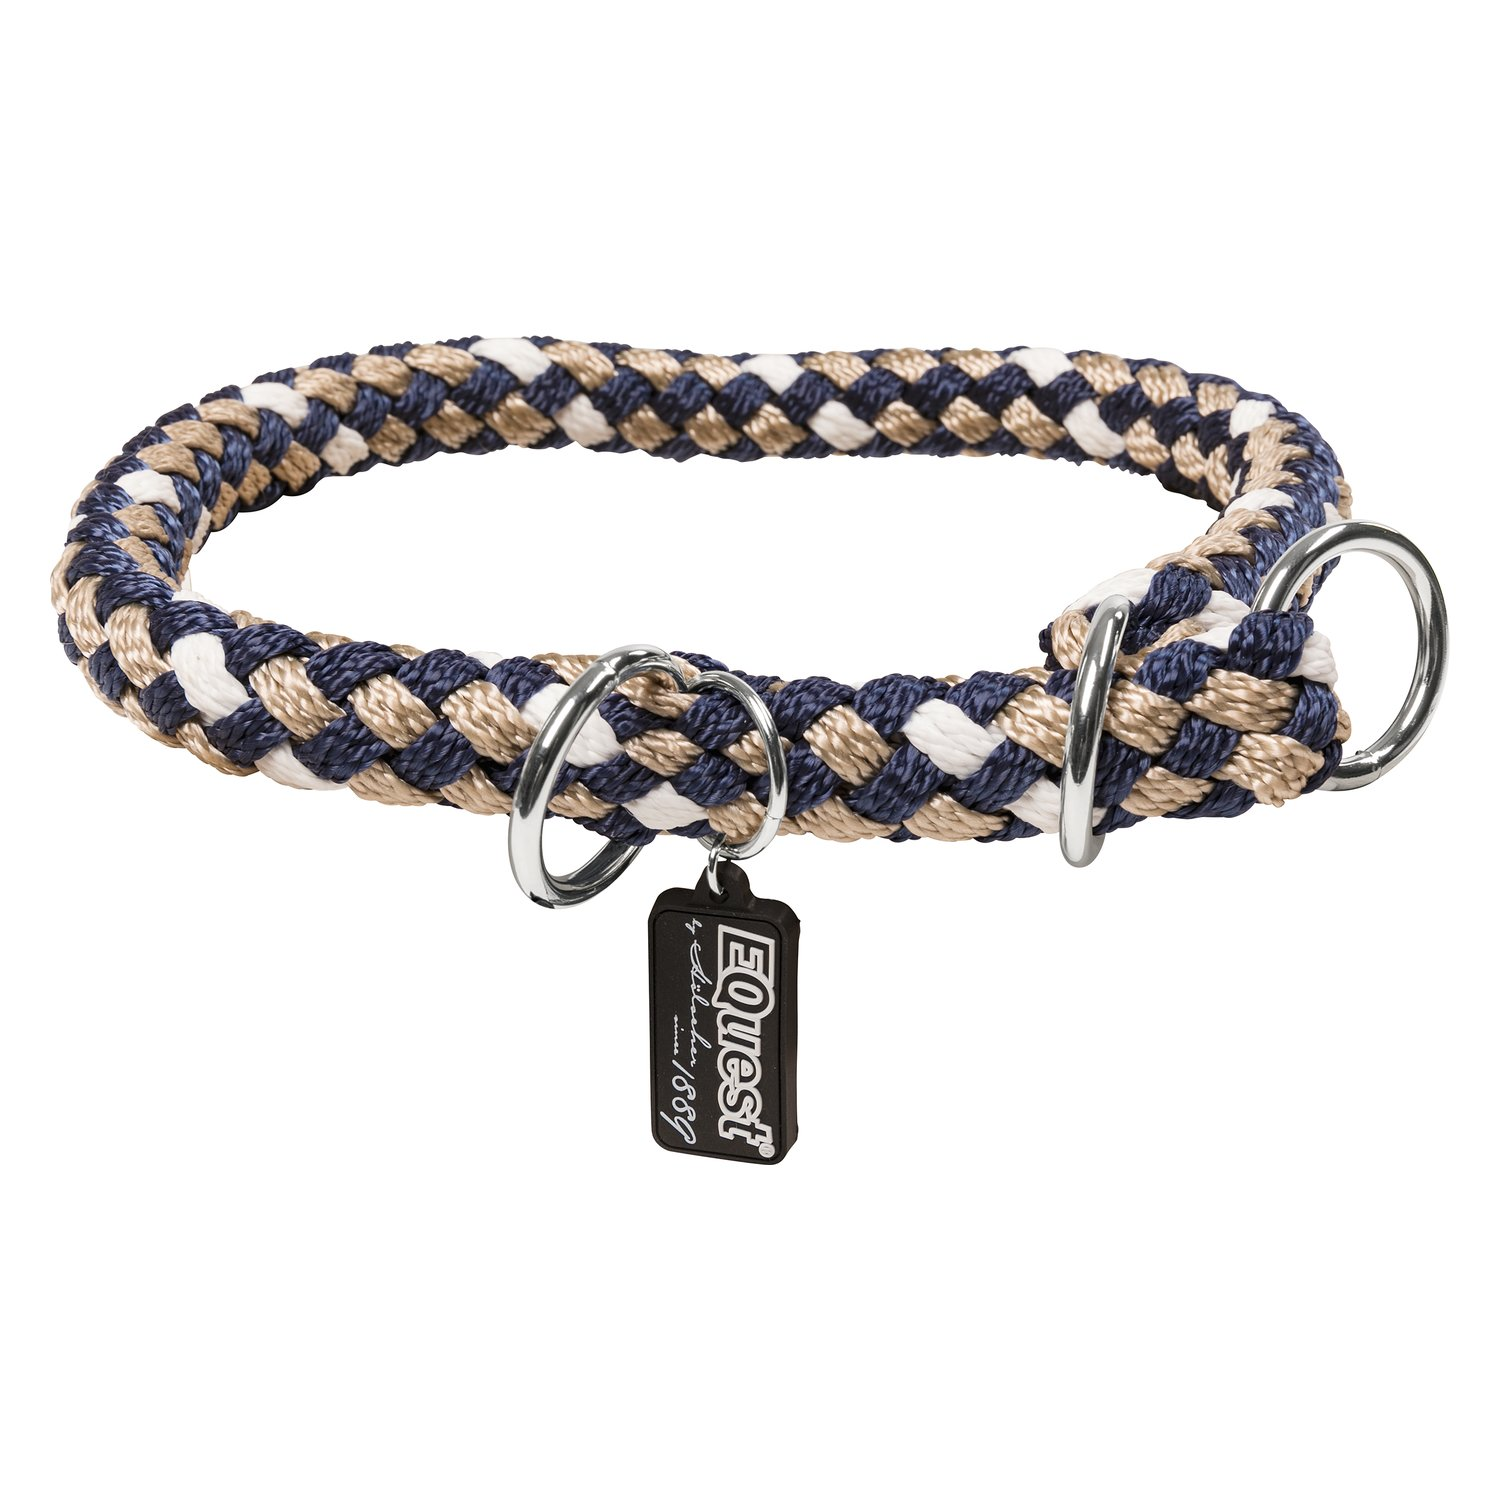 EQuest4DOGS Zugstopp-Halsband Ultimo, schmal